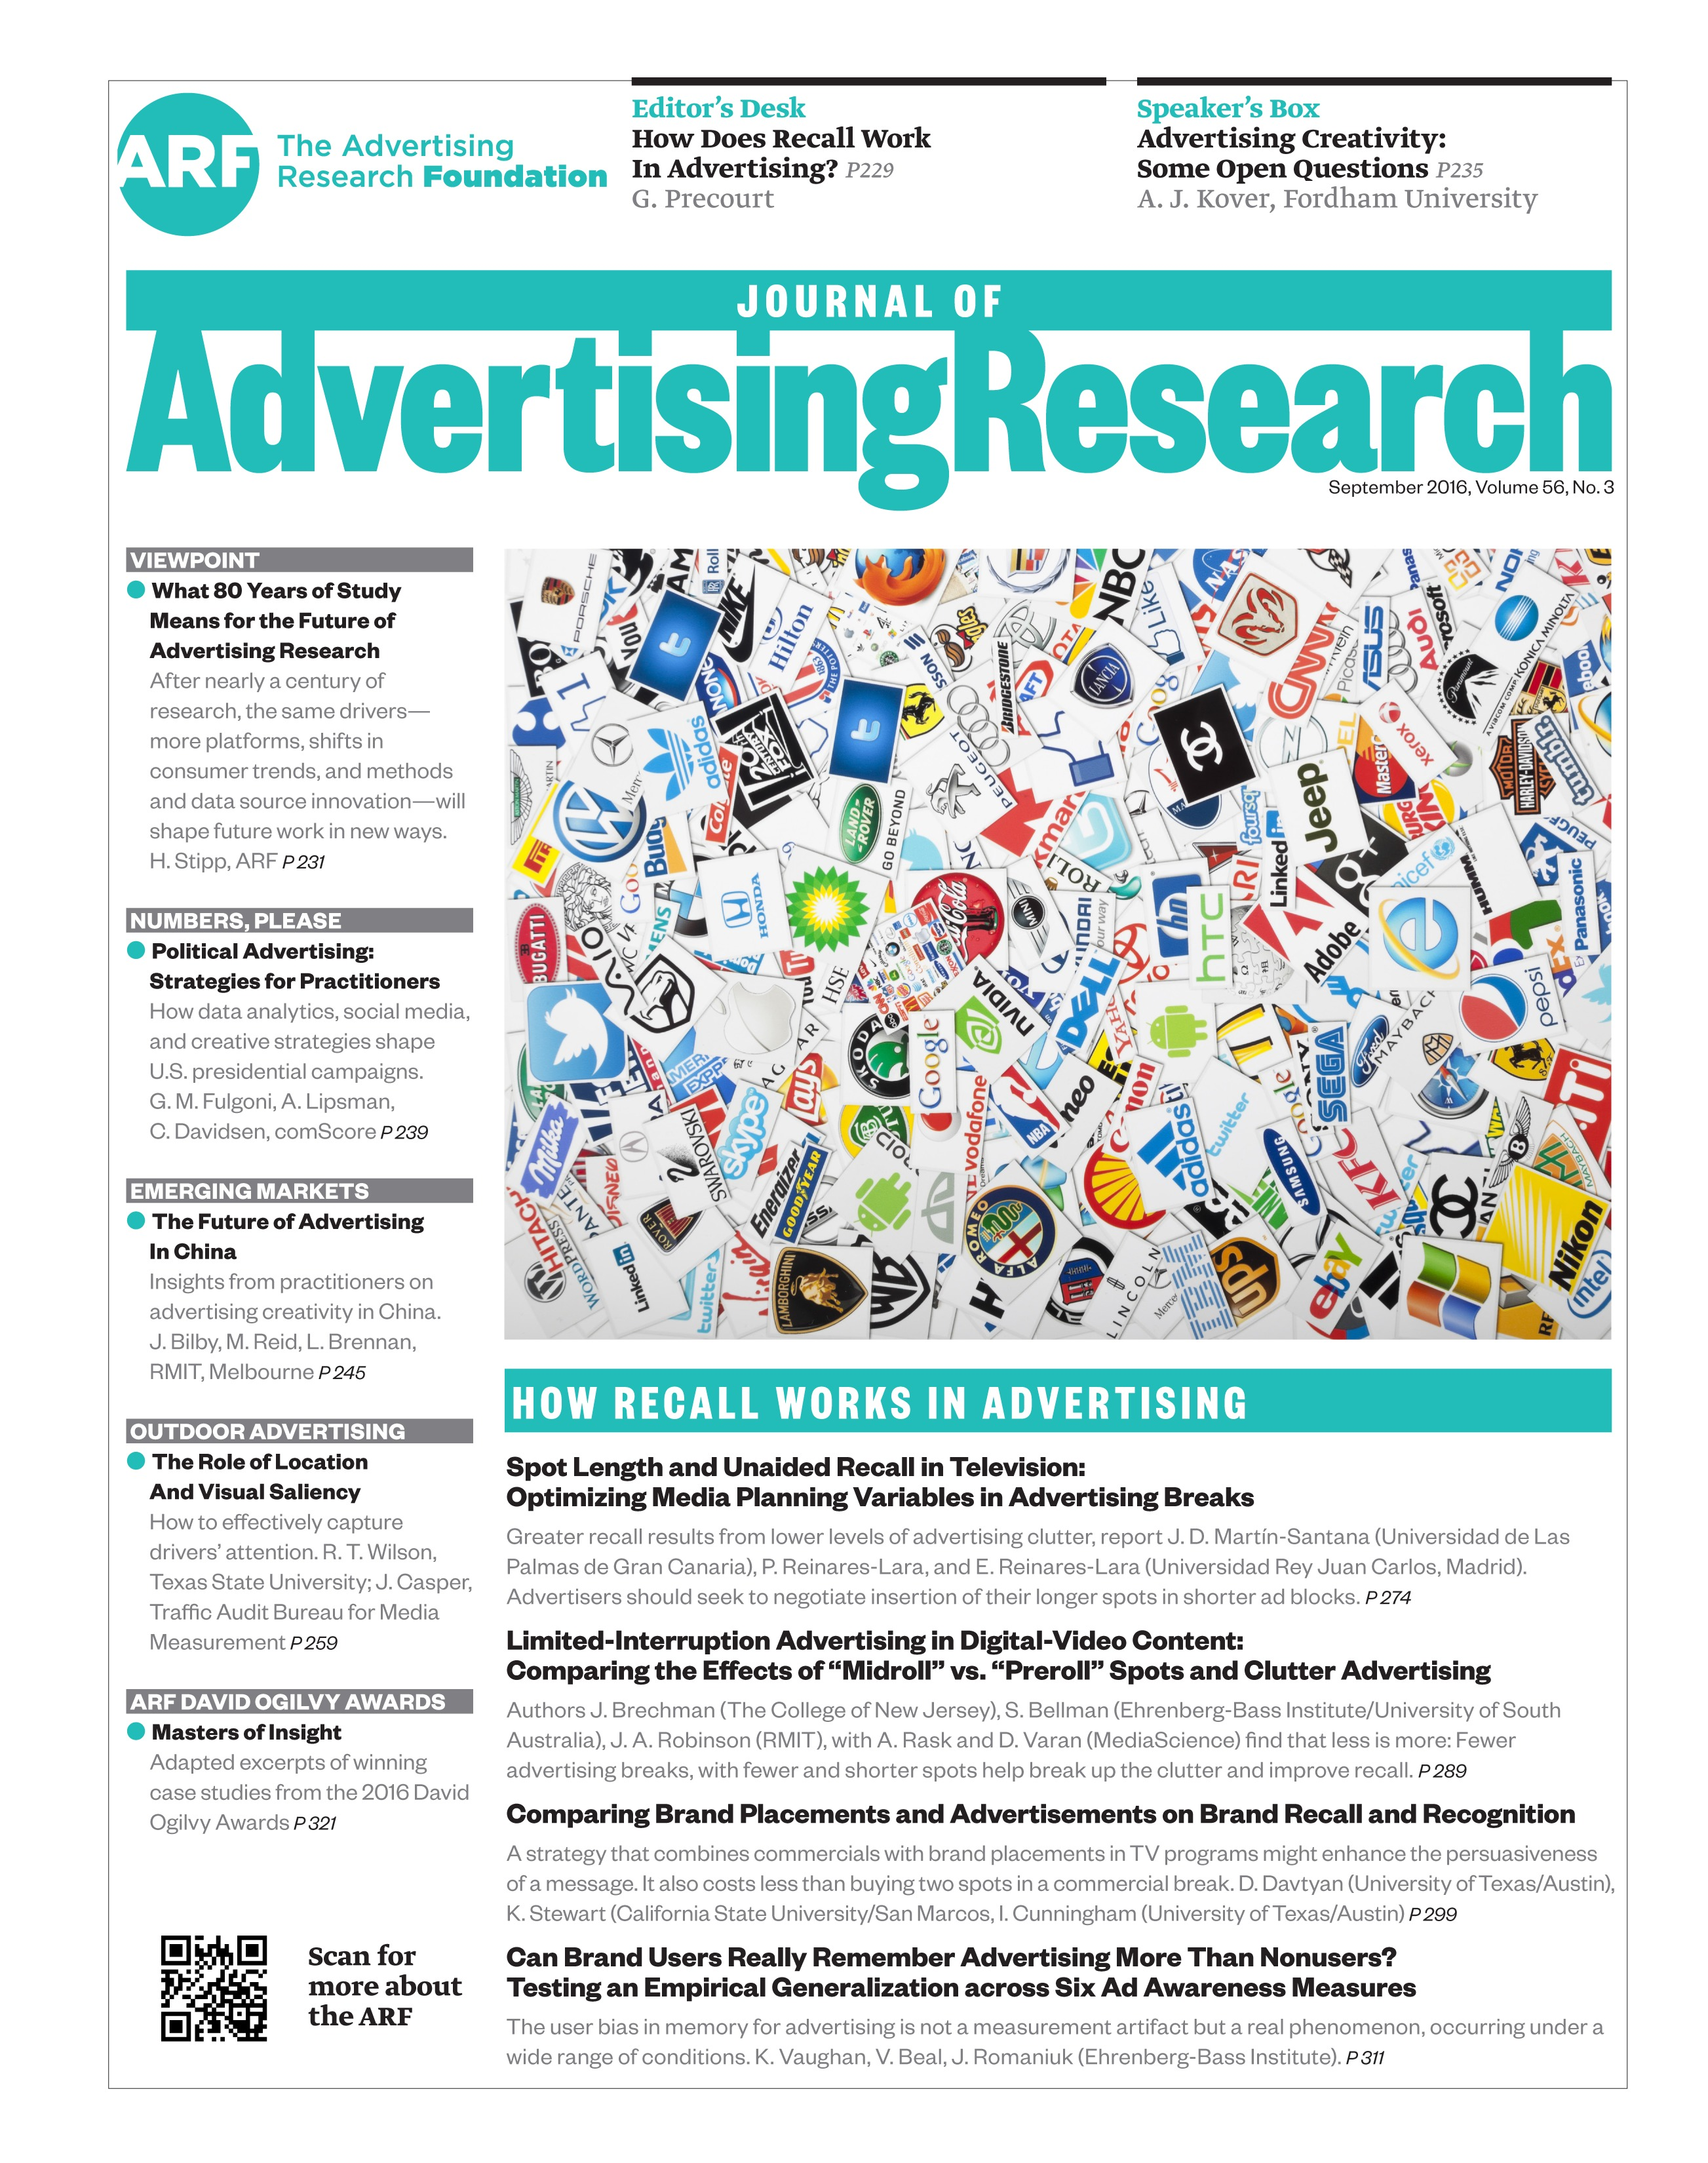 research in newspaper advertising The newspaper works have produced an enormous amount of insights and research pieces over the year these insights, powered by emma, allow them to create amazing consumer profiles, deep dive into industry categories, and understand how different media work together.